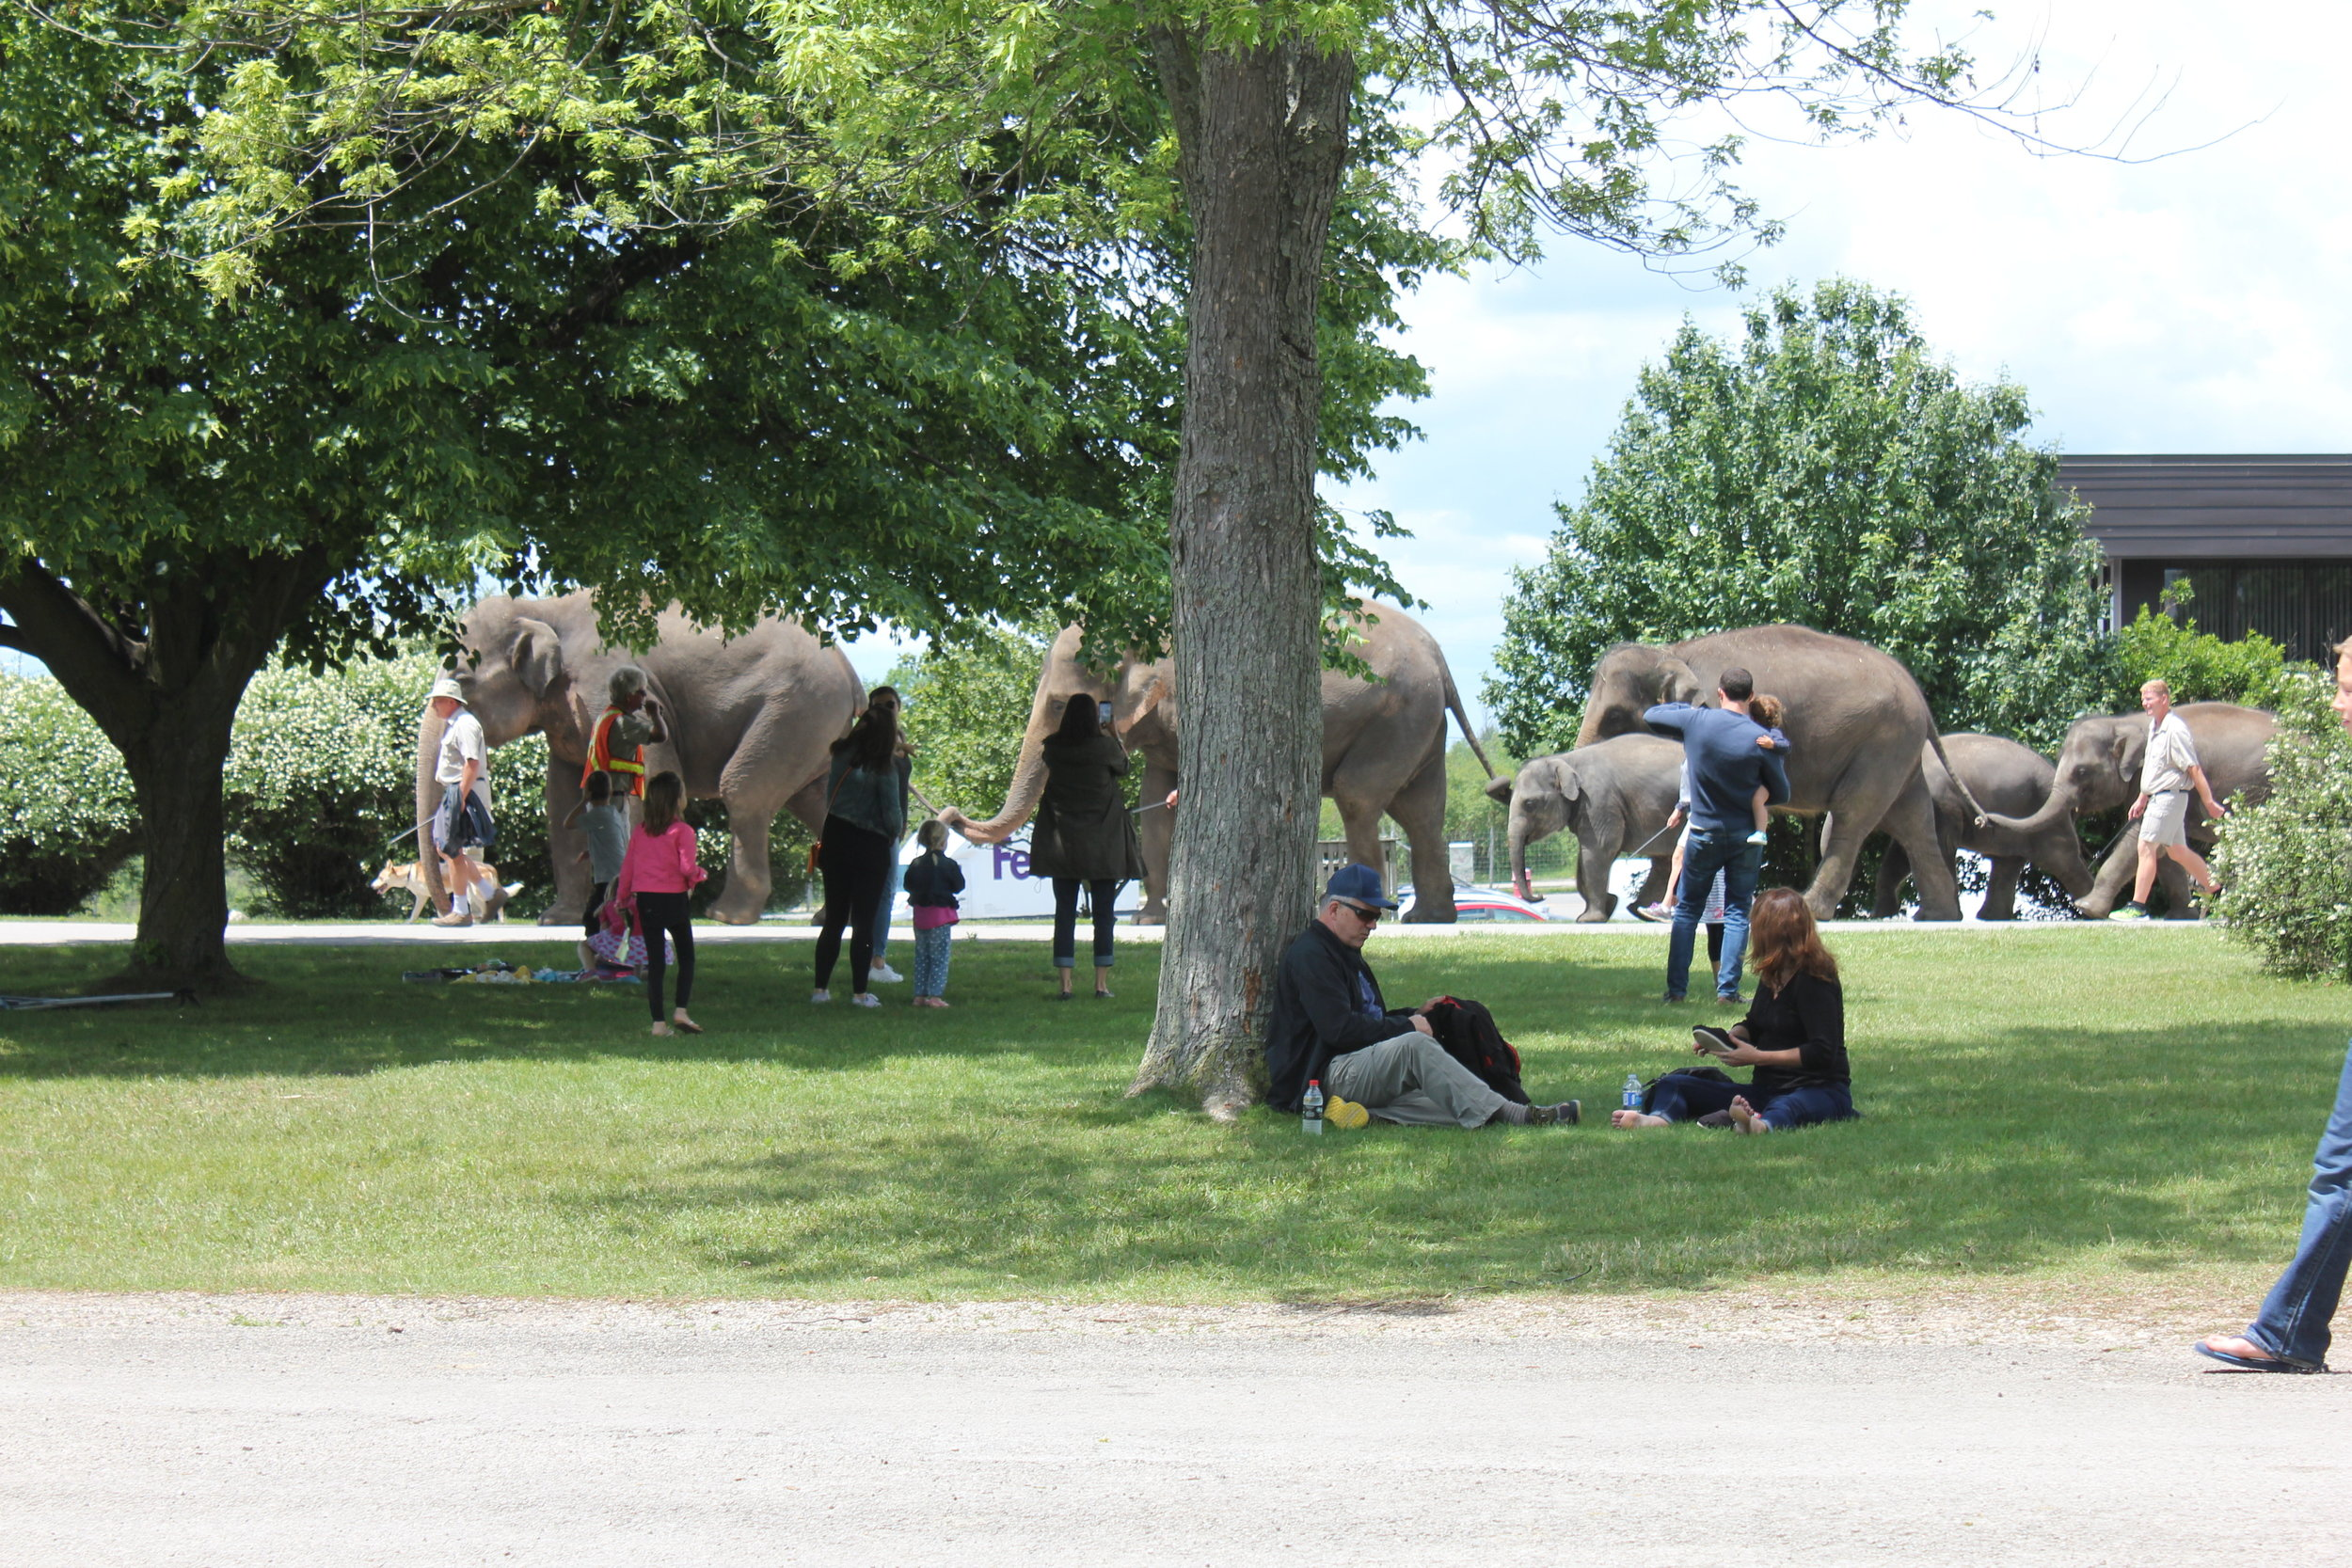 Walking the elephants at African Lion Safari